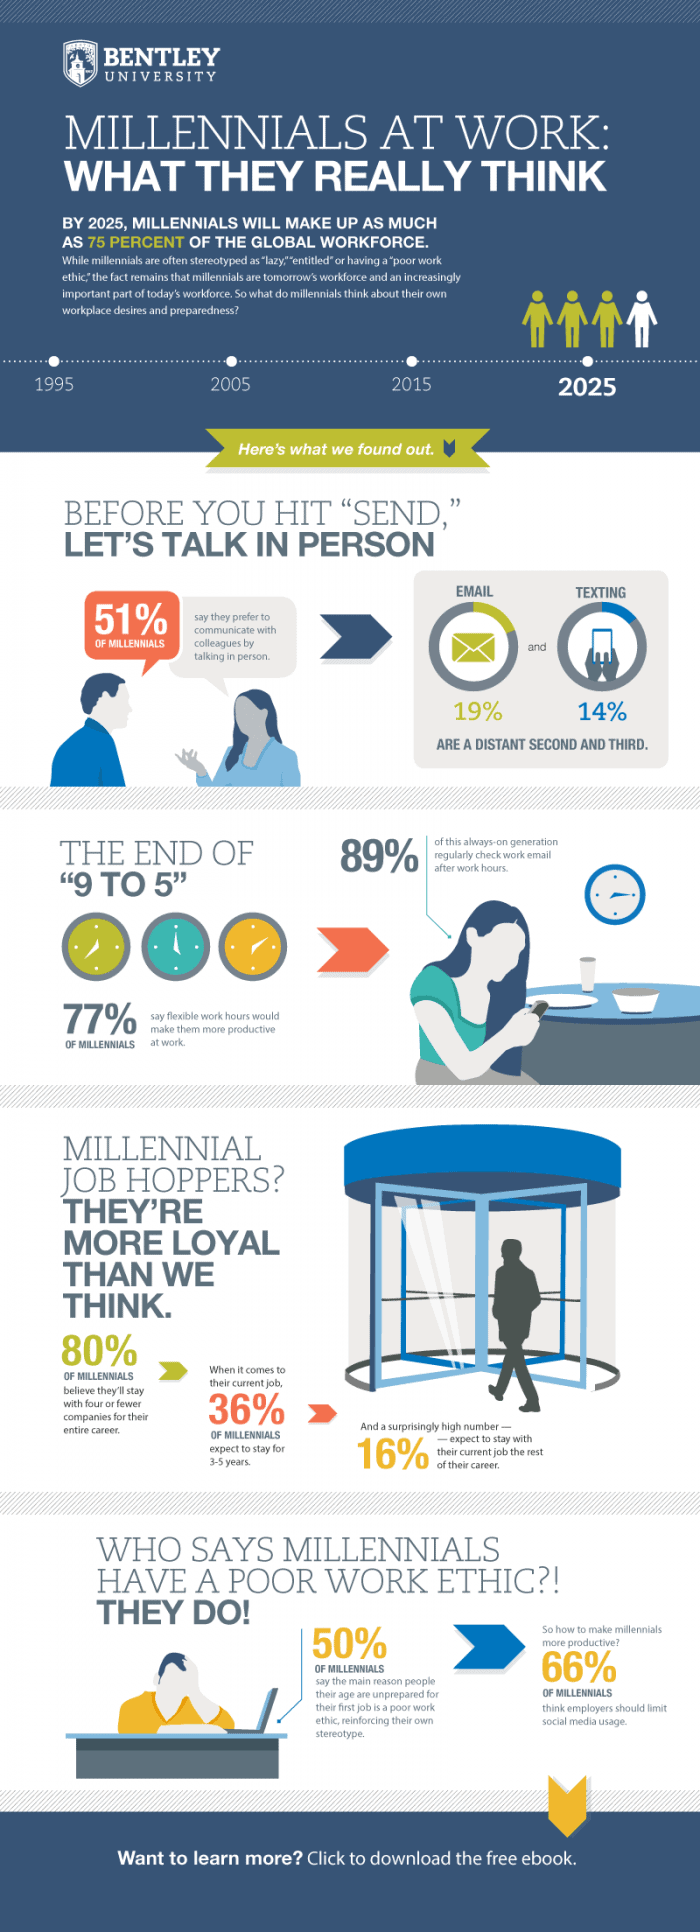 Millenials at Work Infographic